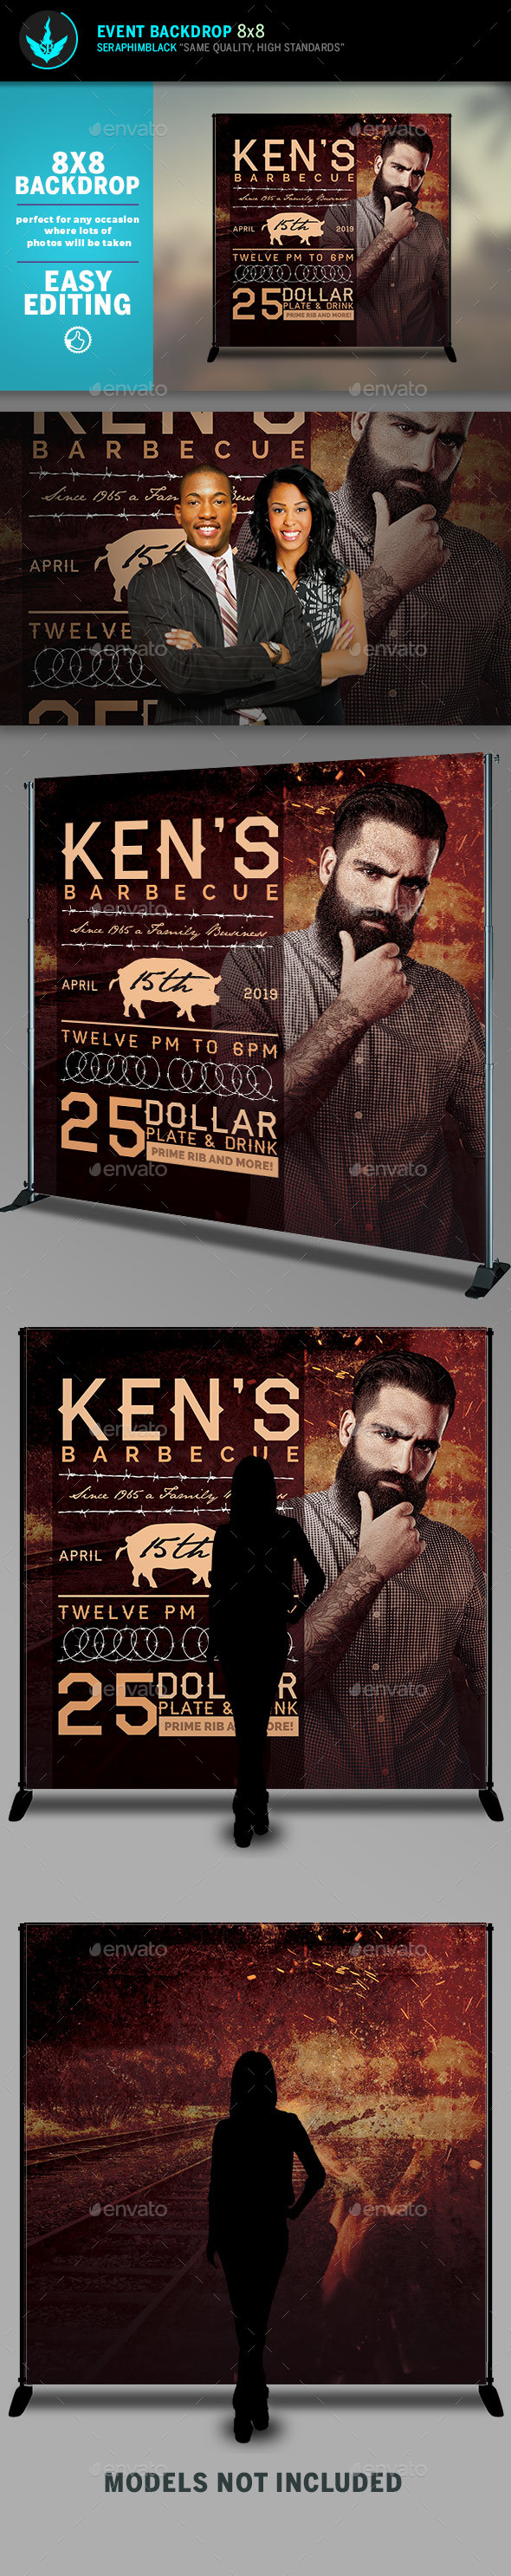 Barbecue 8x8 Event Backdrop Template - Signage Print Templates